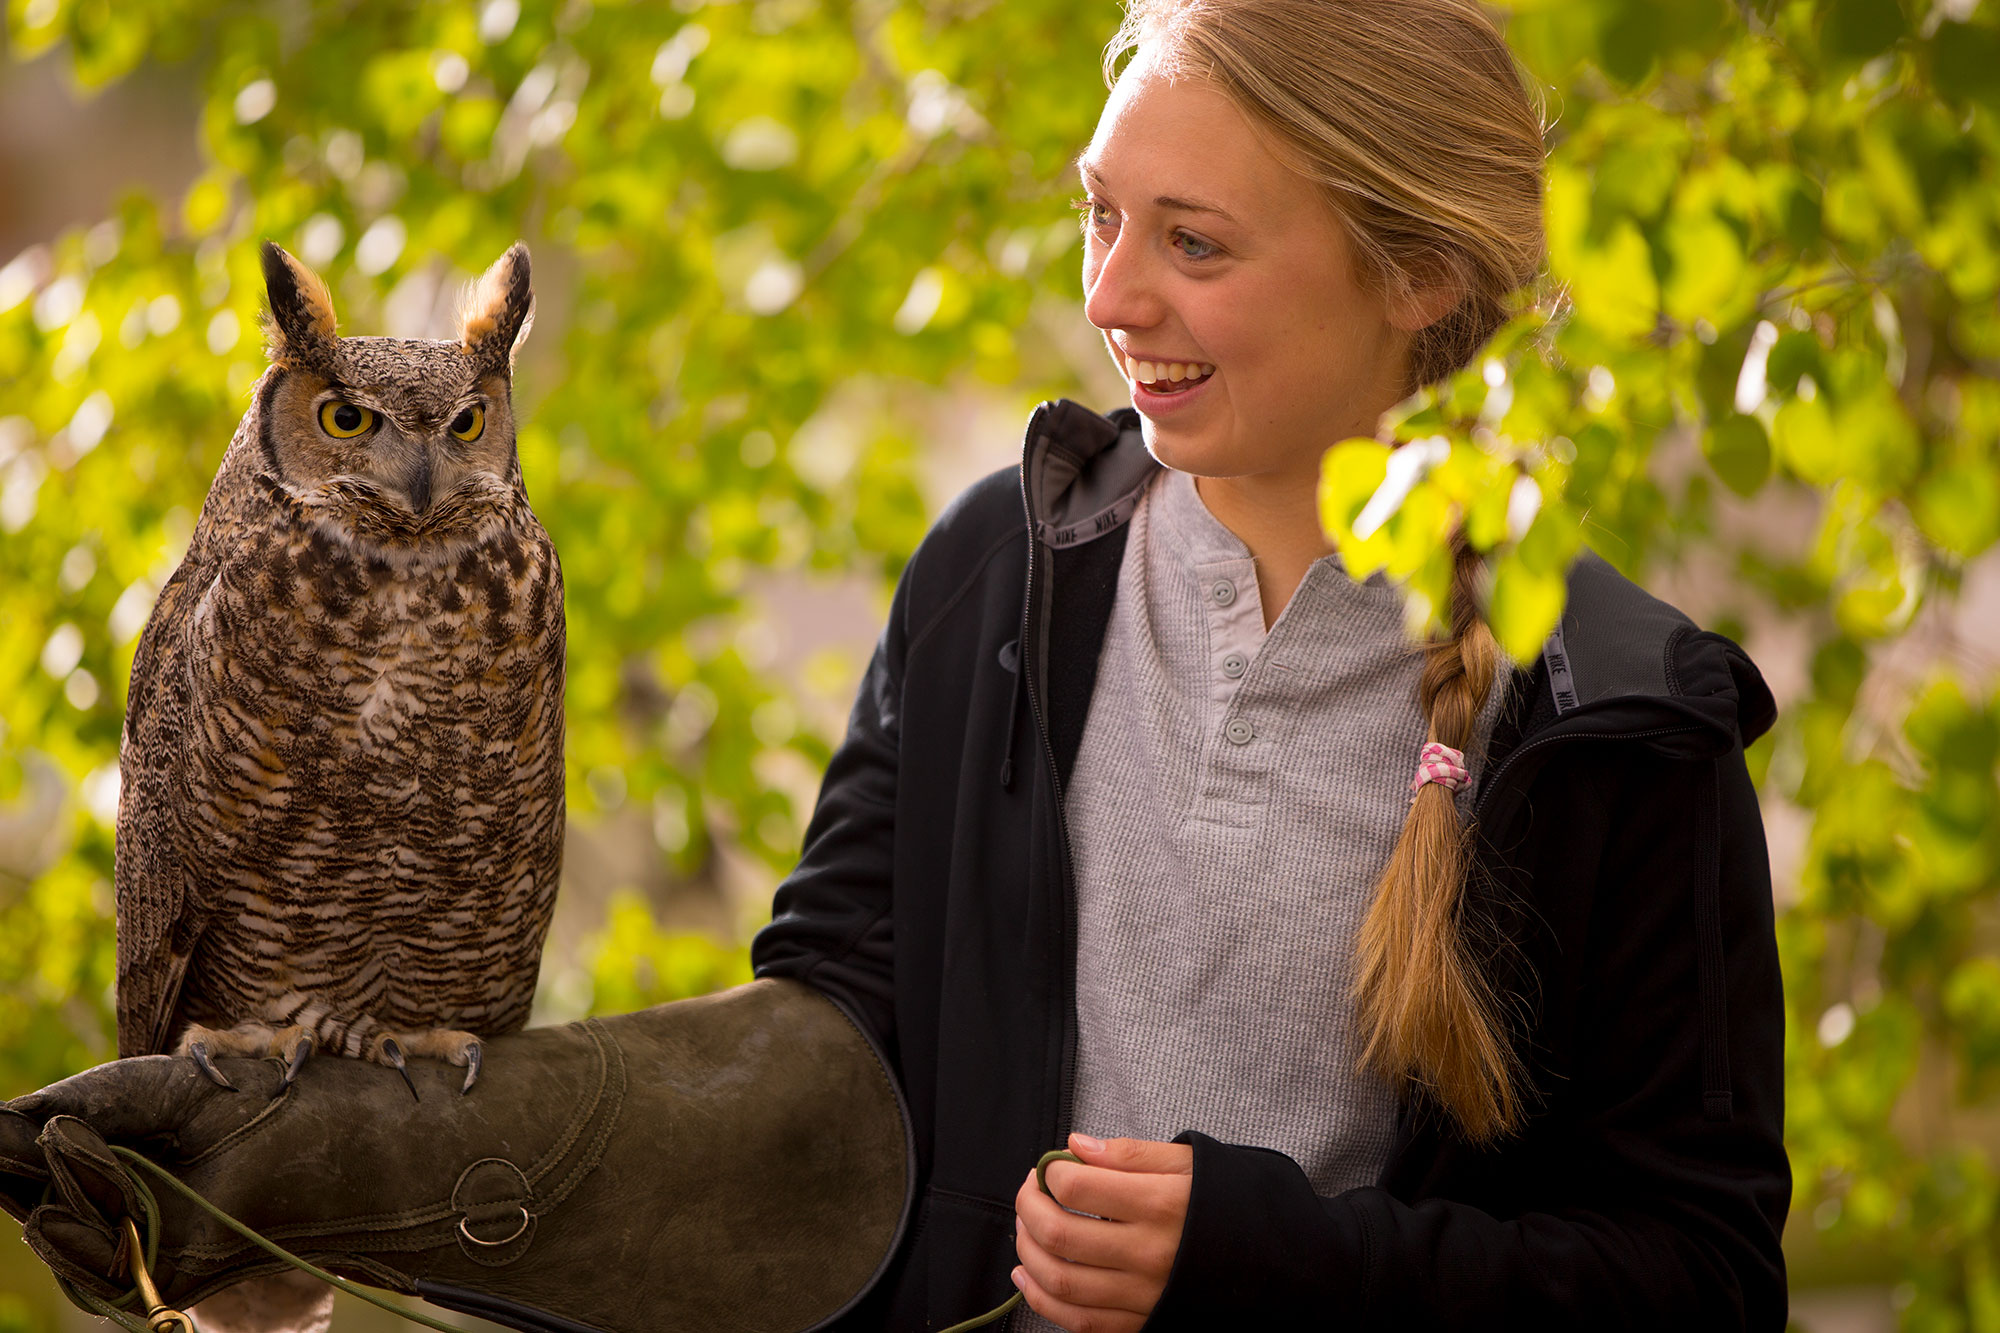 Image of Carroll Student with owl perched on arm